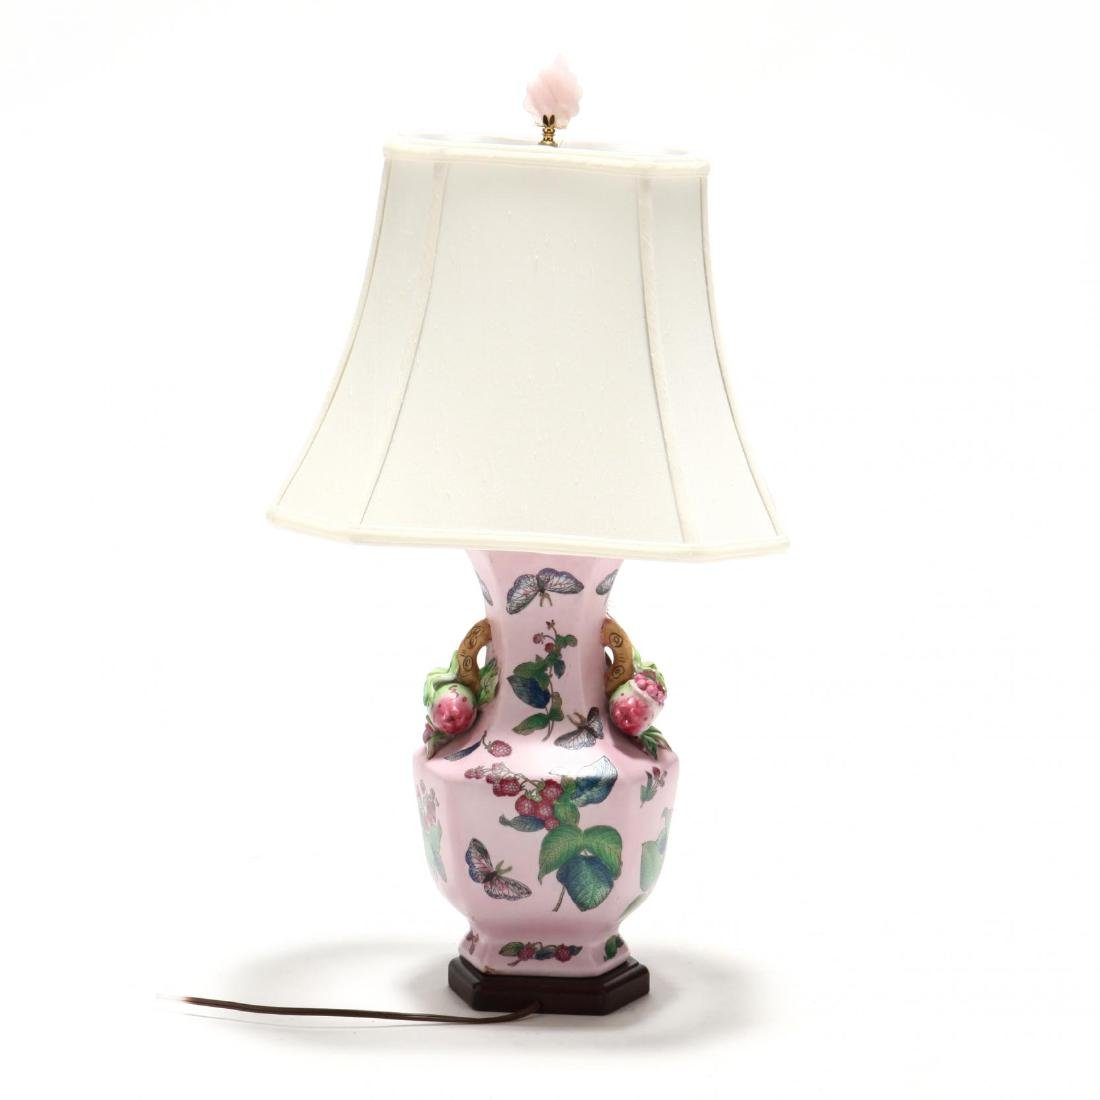 Chinese Export Style Porcelain Table Lamp - 2